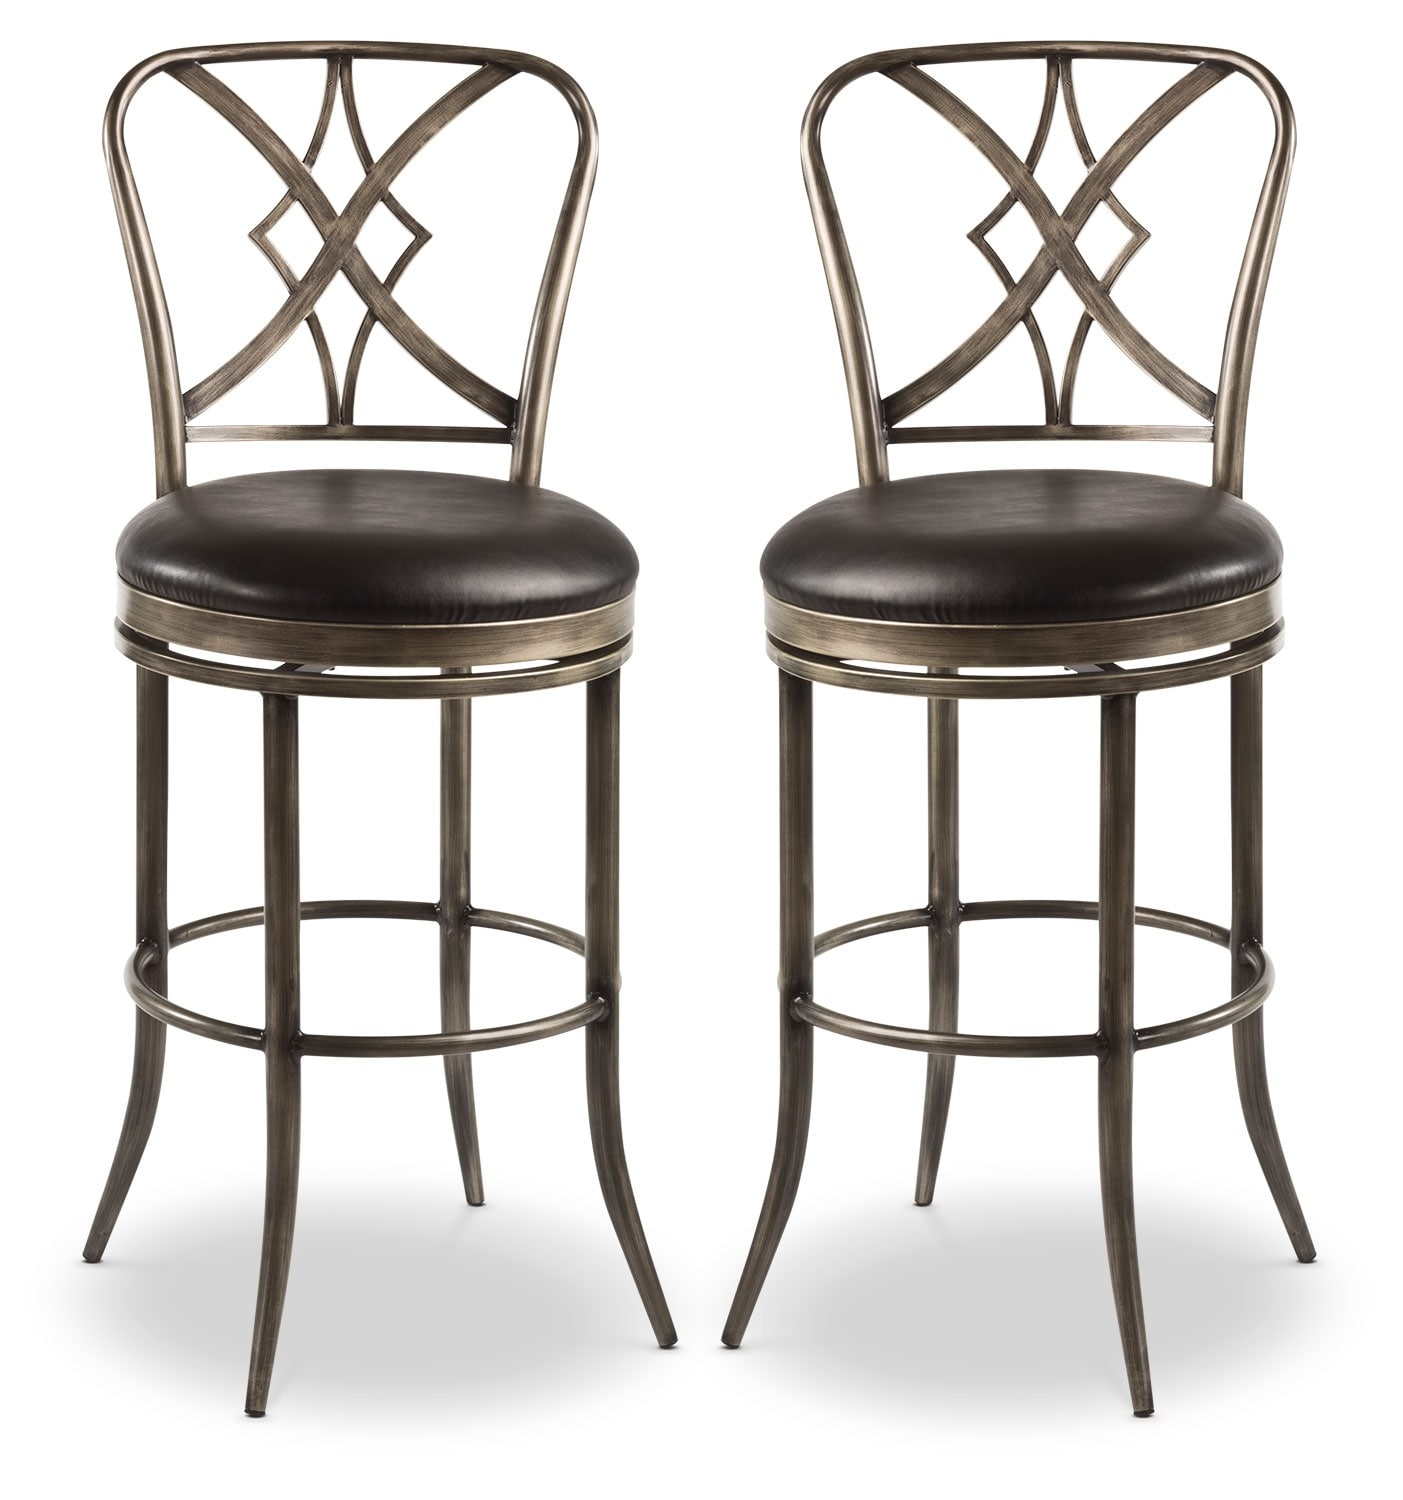 Jaqueline Swivel Barstool – Set of 2